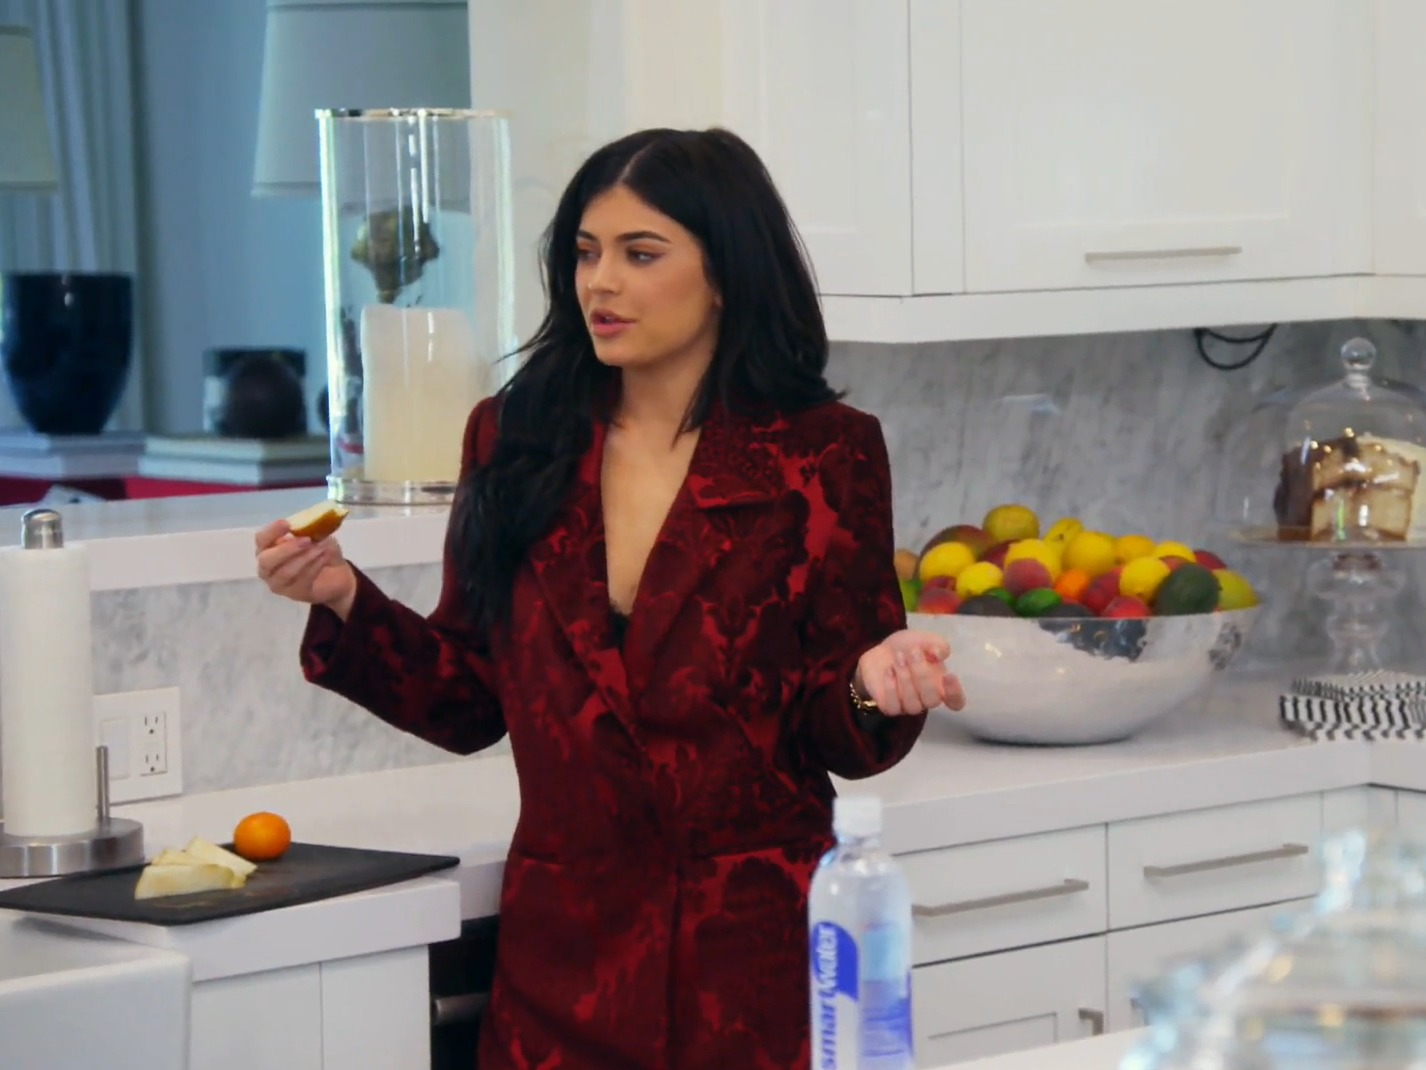 Kylie's home look